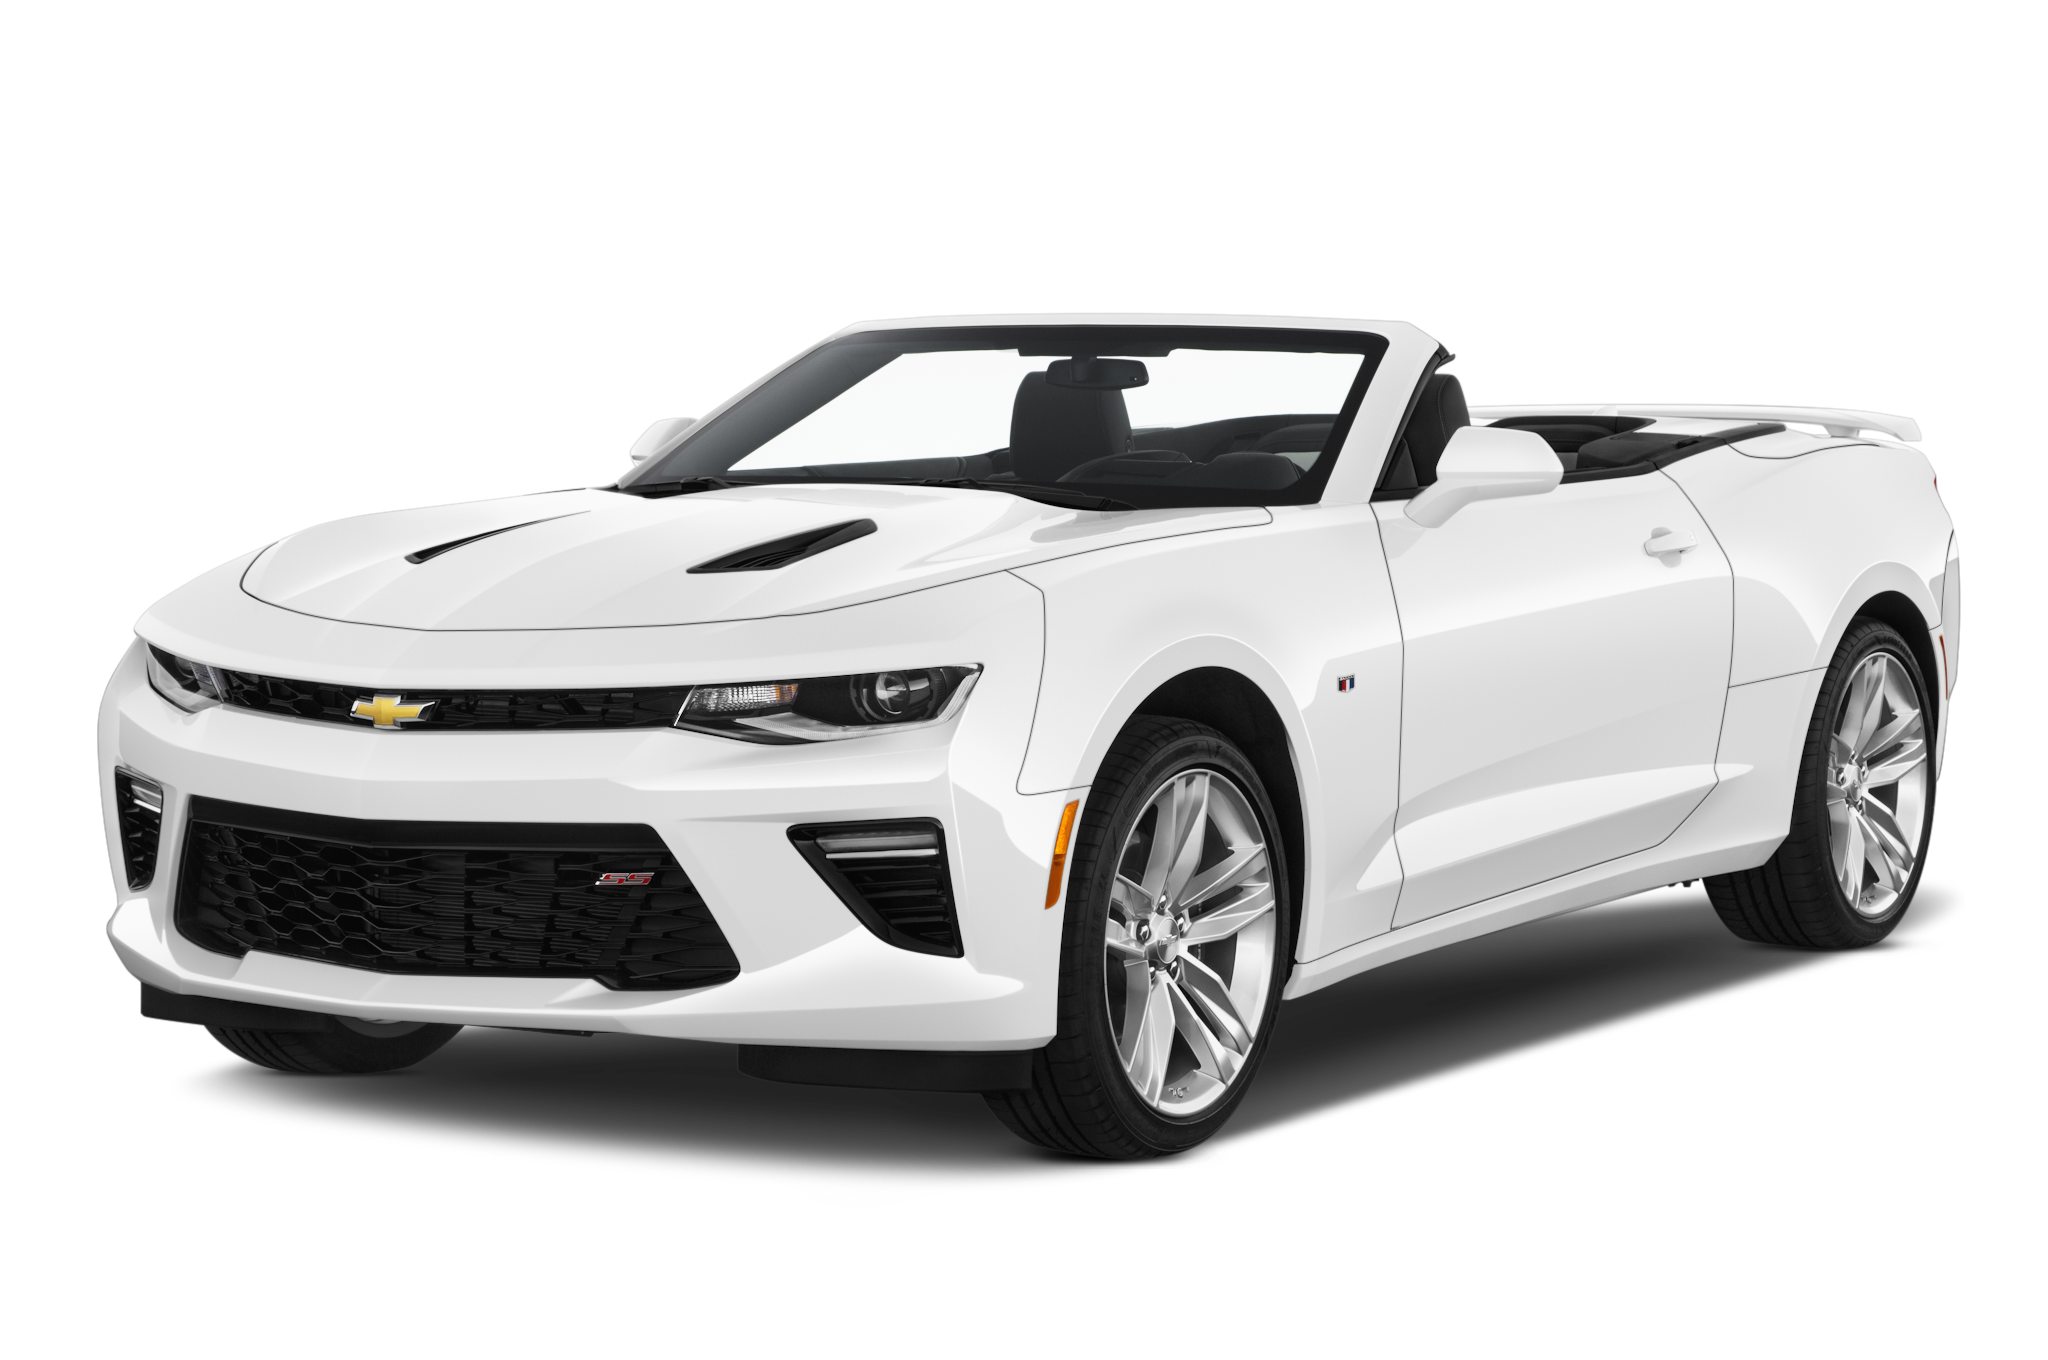 89 camaro clipart clipart images gallery for free download.